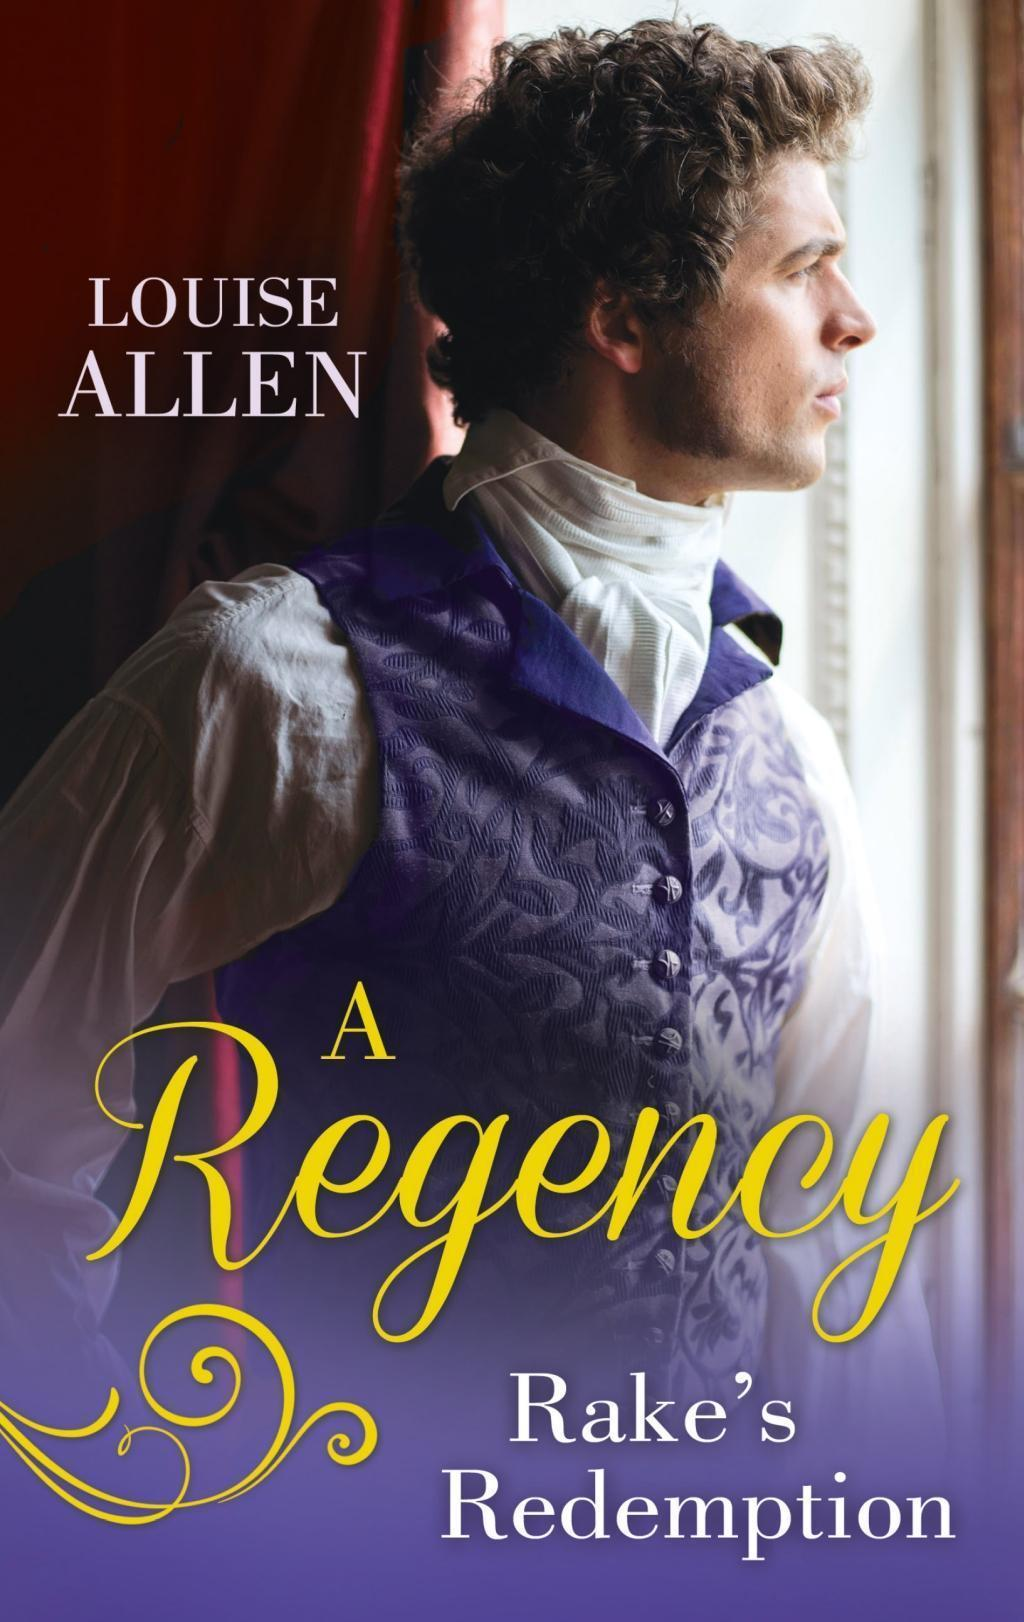 A Regency Rake's Redemption: Ravished by the Rake / Seduced by the Scoundrel (Mills & Boon M&B)